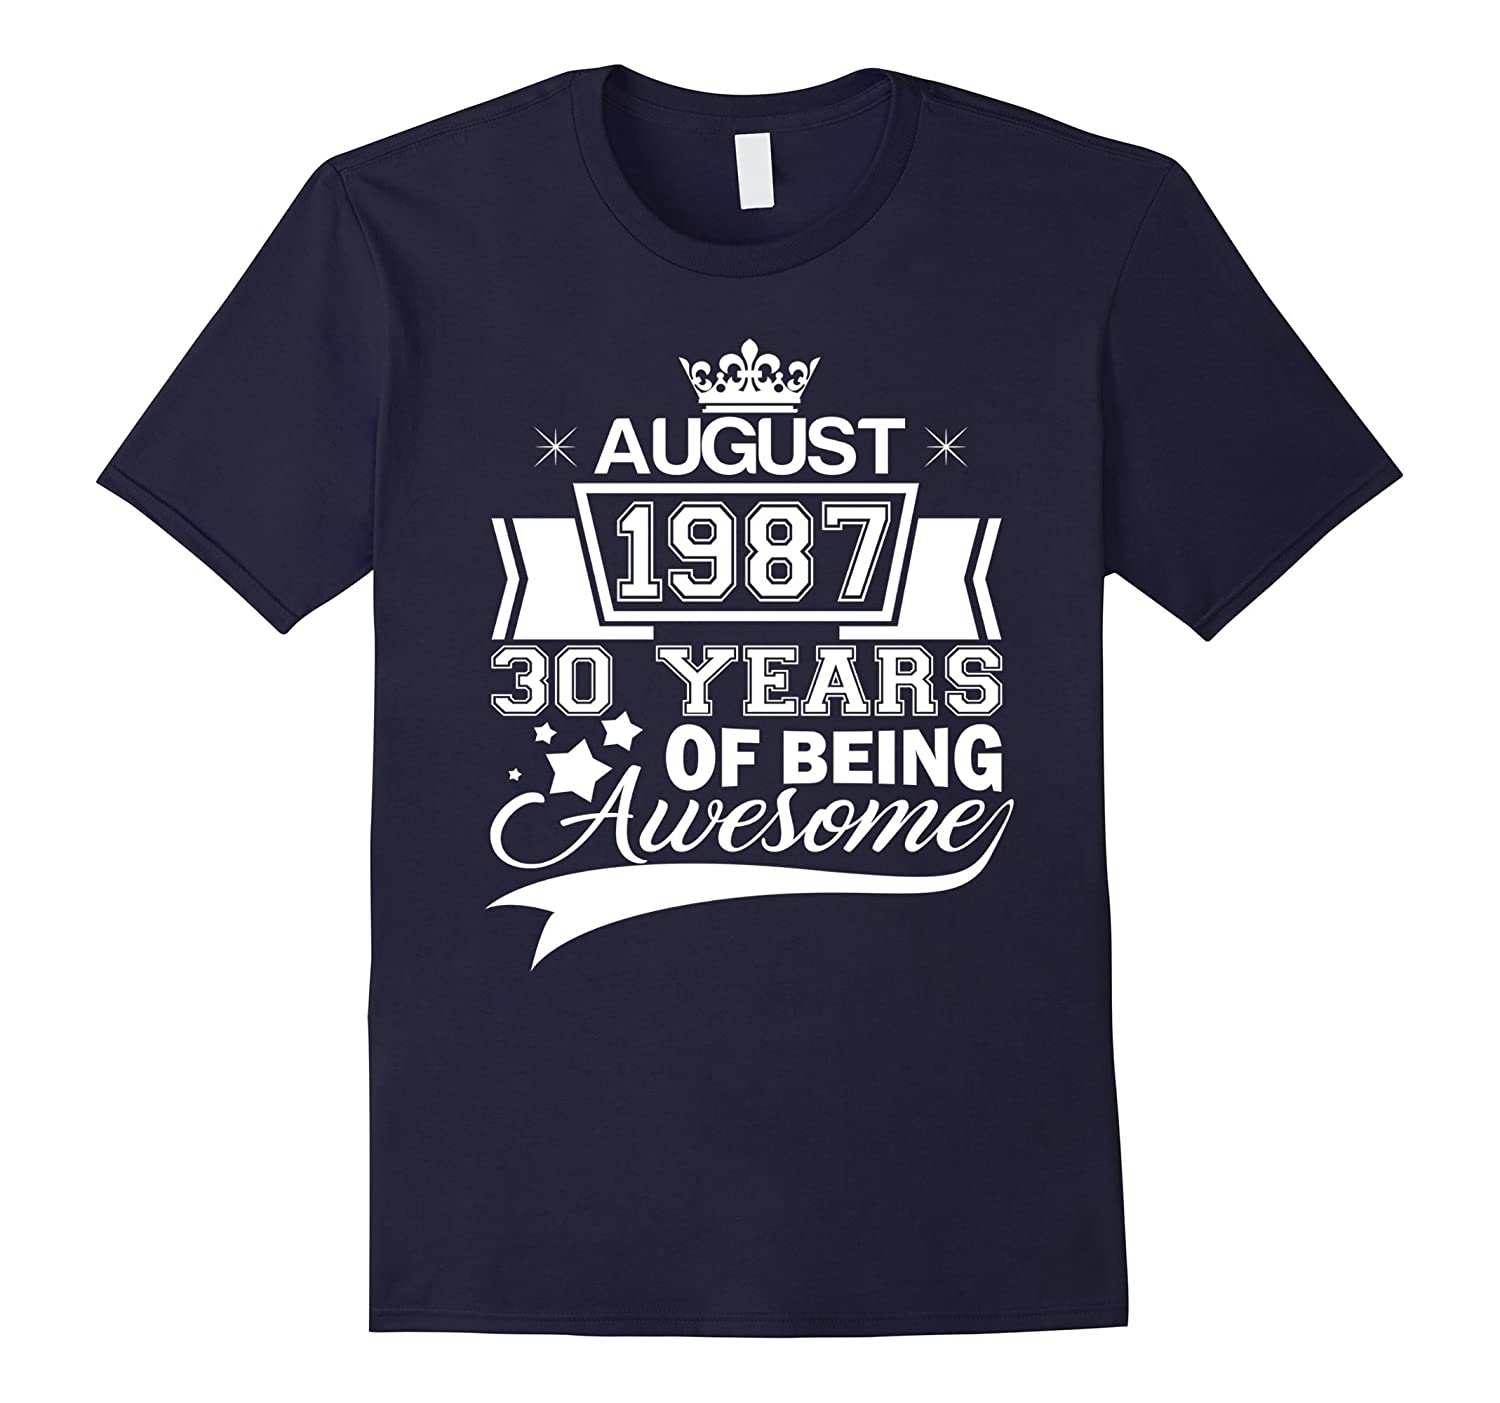 30 years of being awesome - Born in August 1987 T-Shirt-TH